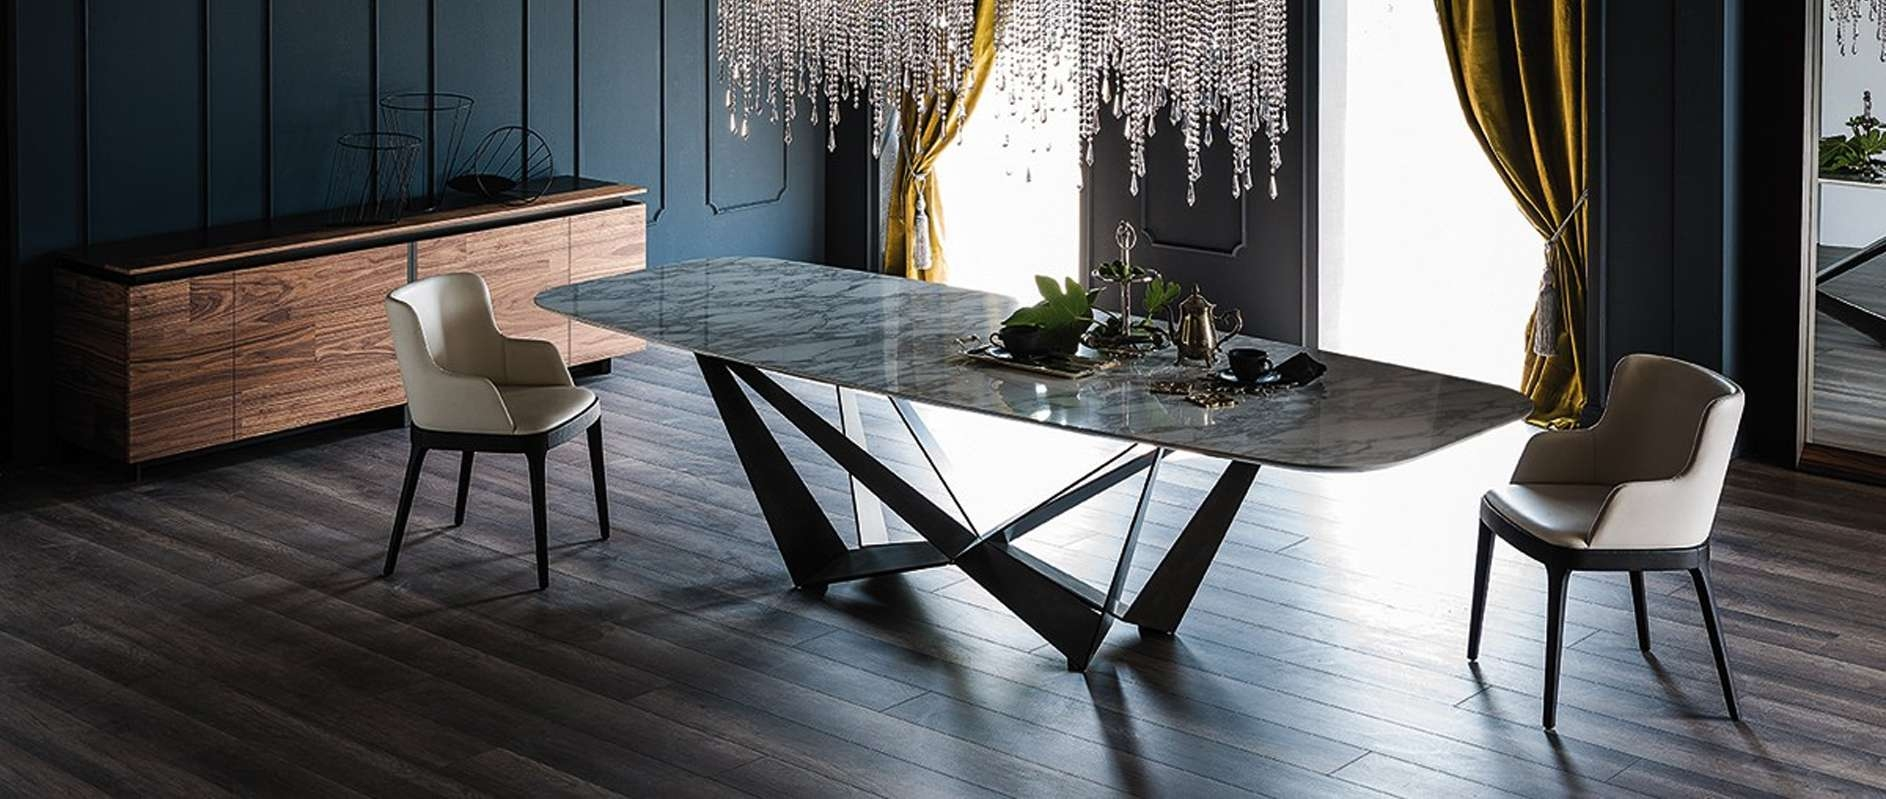 Modern Dining Room Furniture – Modern Dining Tables, Dining Chairs Throughout Dining Room Sets With Sideboards (View 14 of 20)